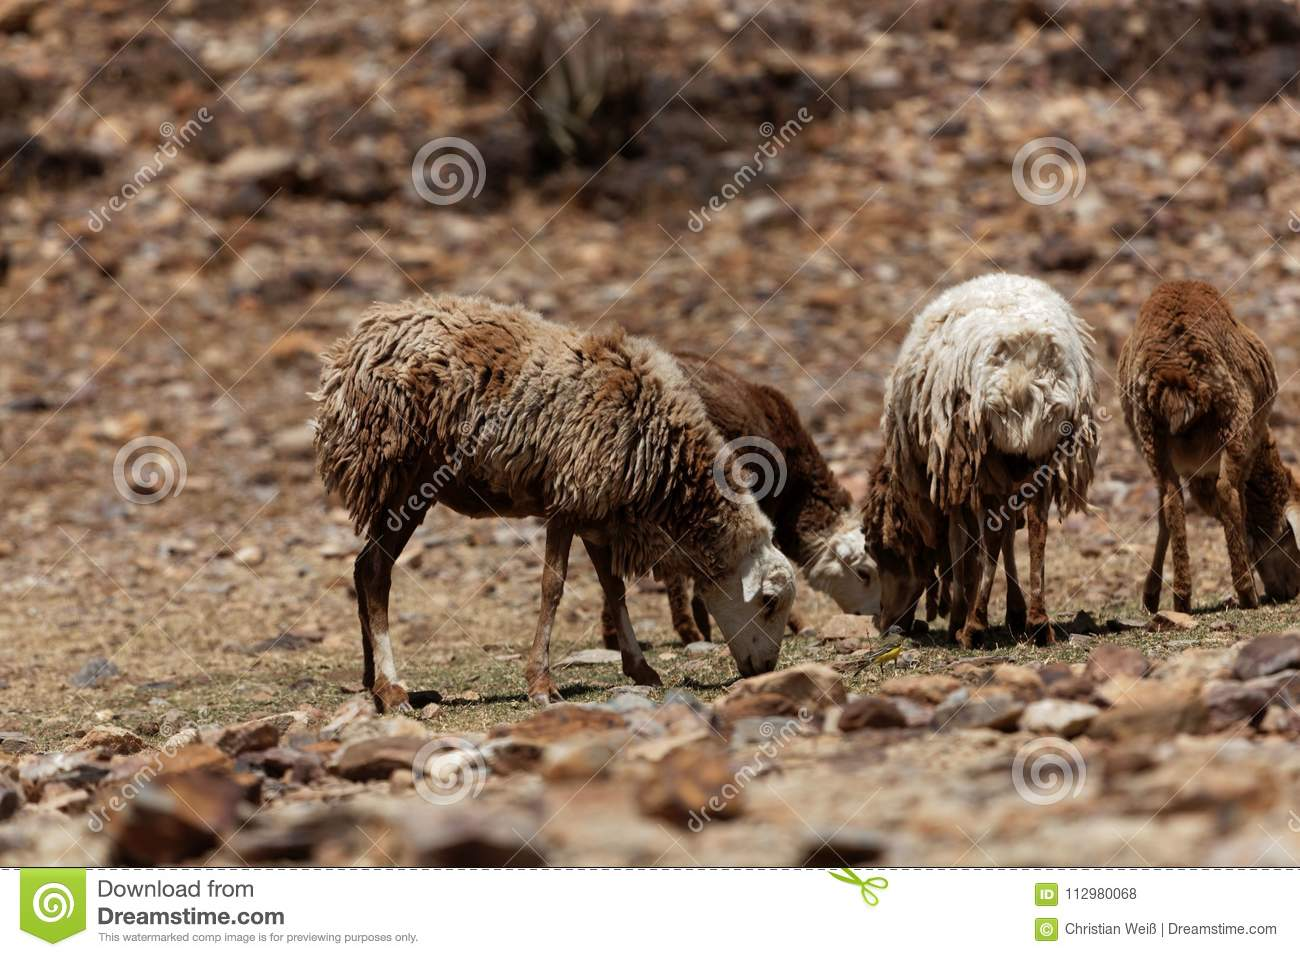 Sheep grazing on a dry field